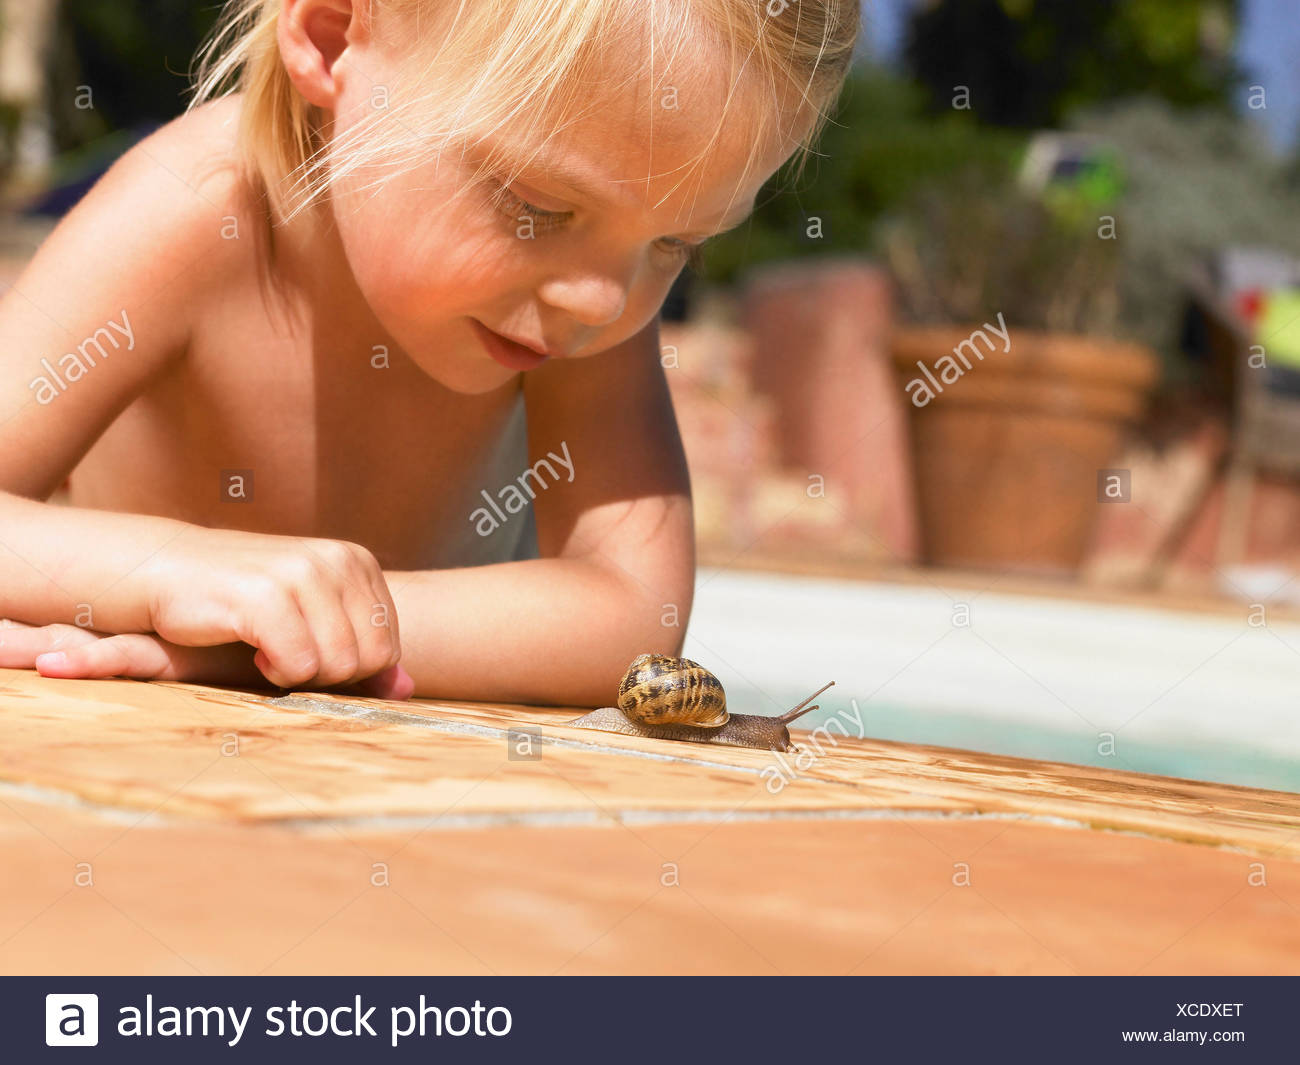 Little girl looking at a snail. Stock Photo